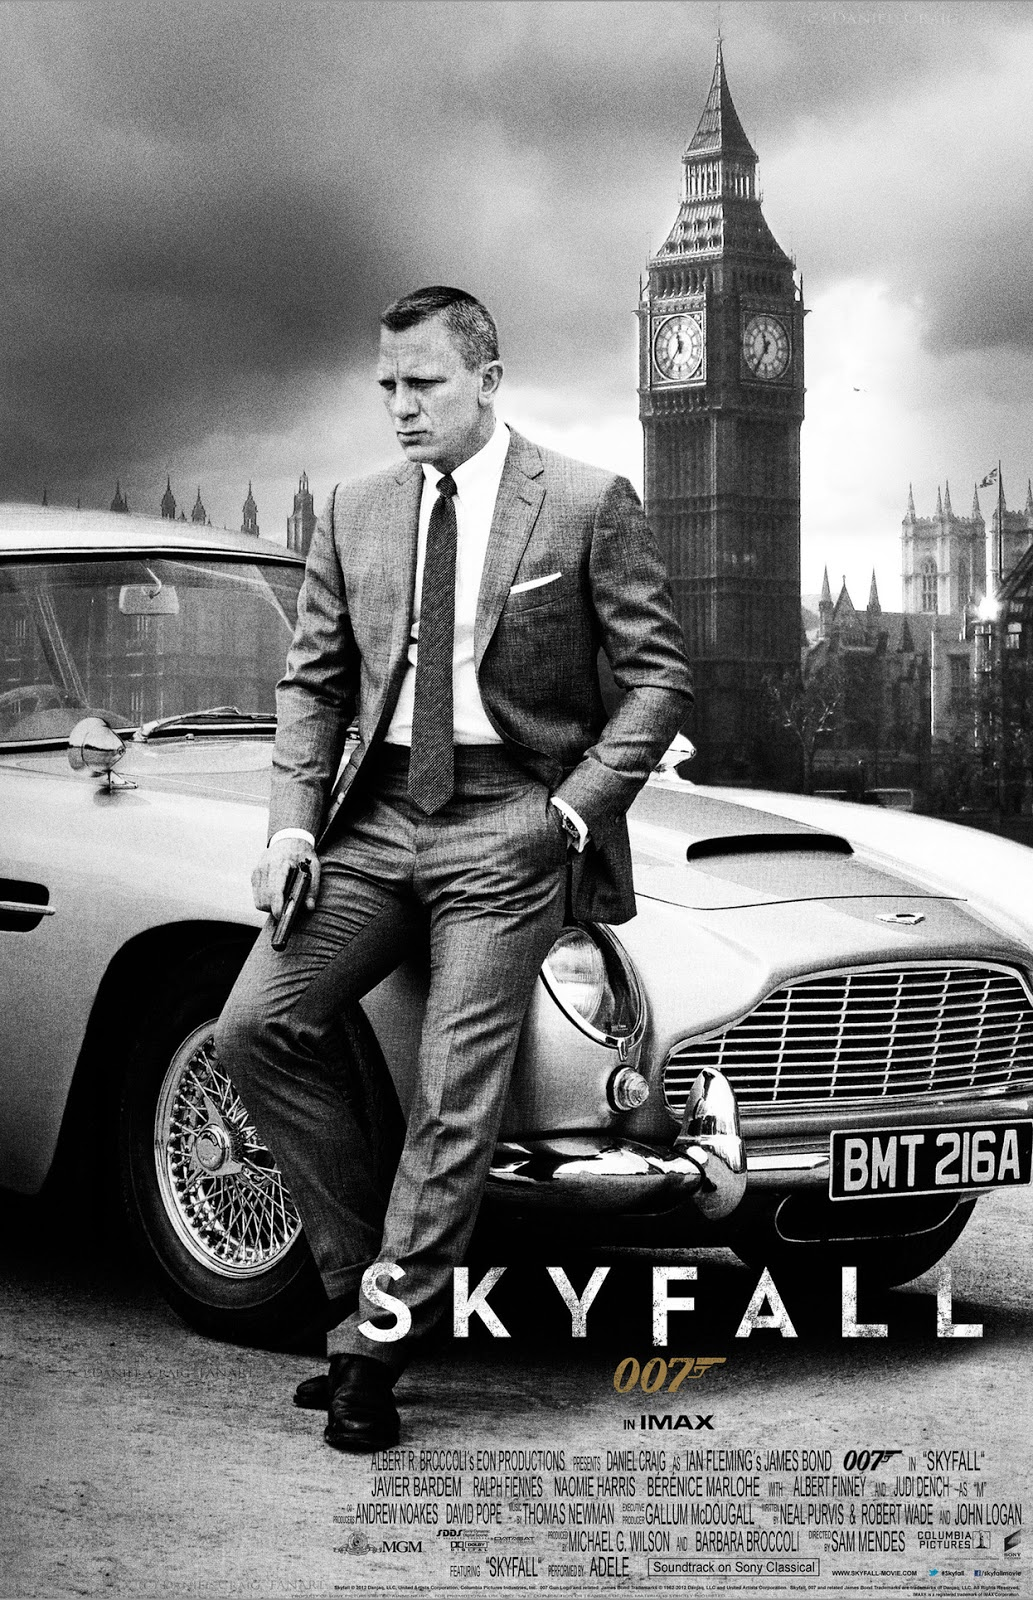 Scotch Cinema: Every Macallan Scotch Sighting From Skyfall